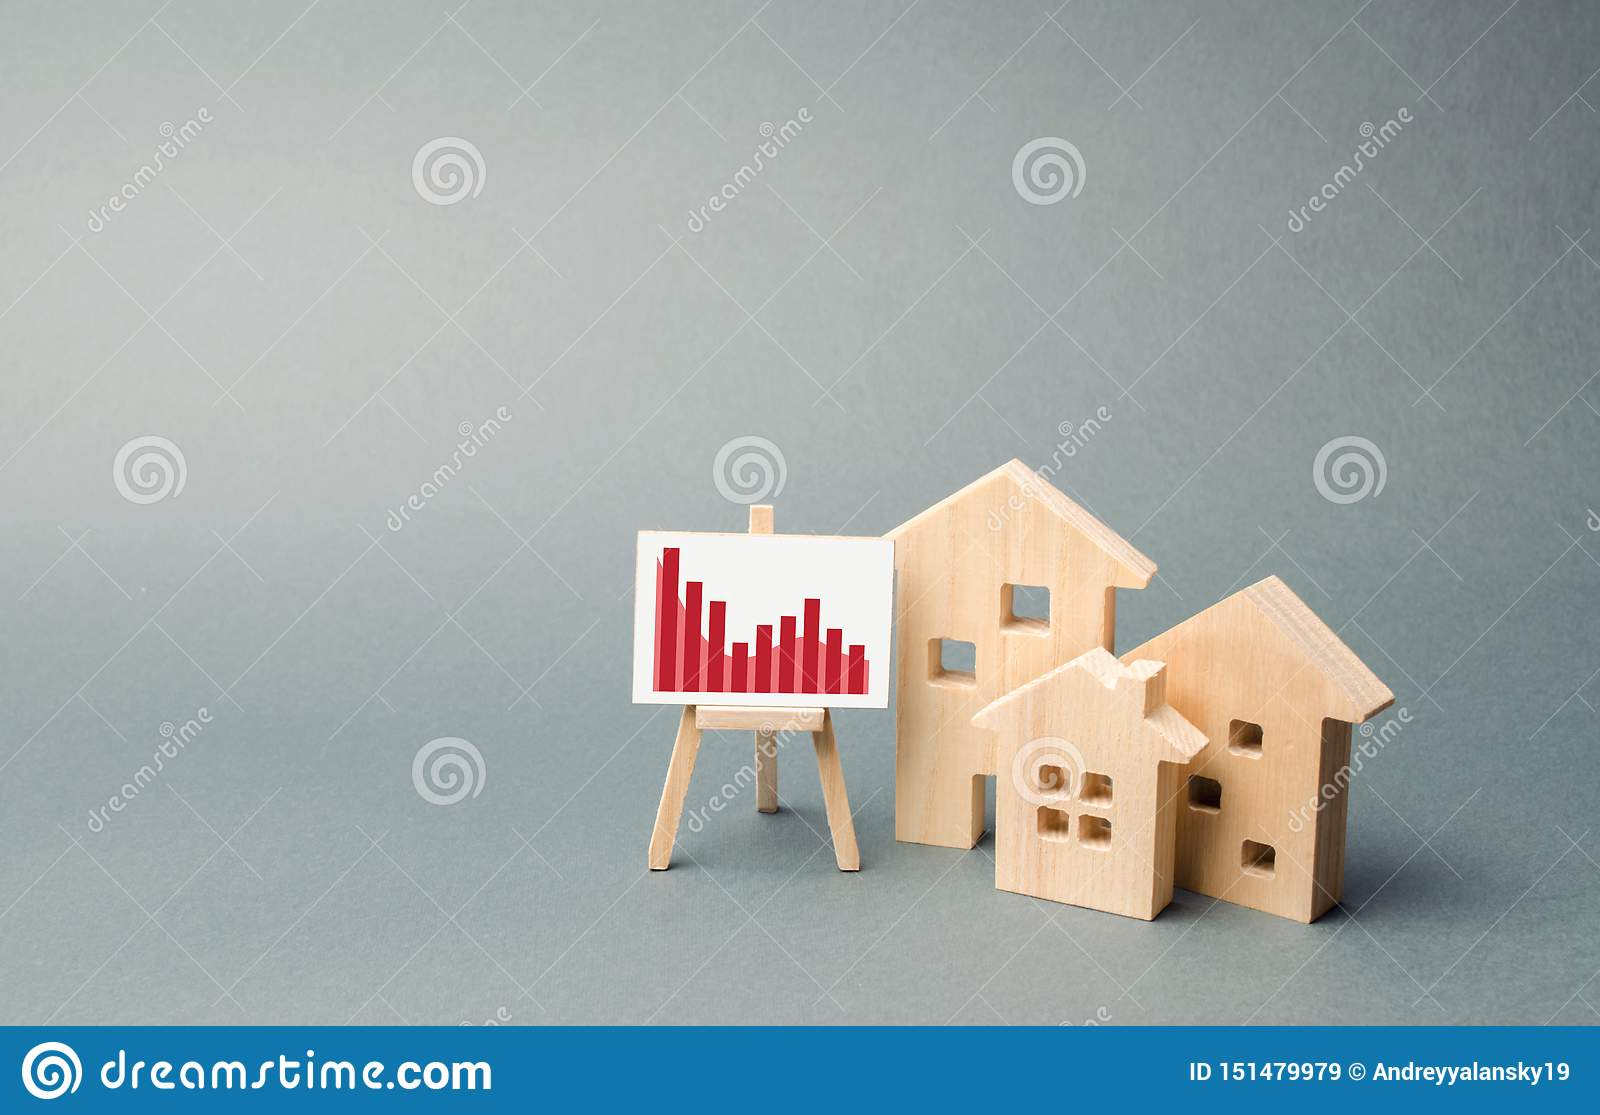 Wooden Houses With A Stand Of Graphics And Information Concept Of